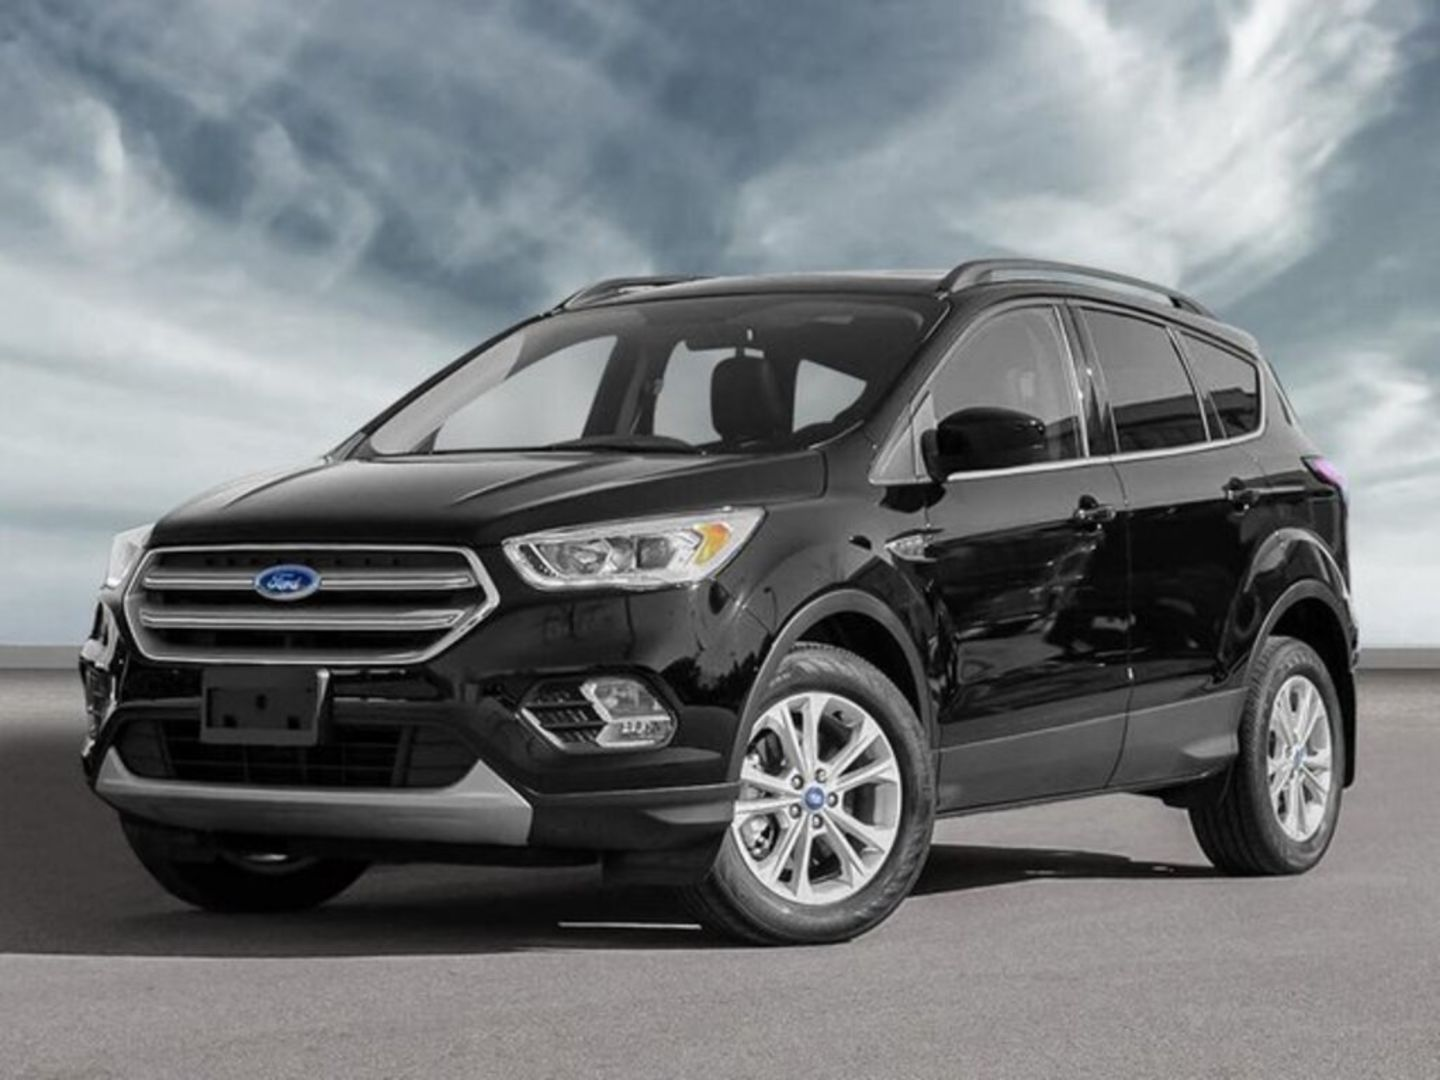 2018 Ford Escape SEL for sale in Mississauga, Ontario